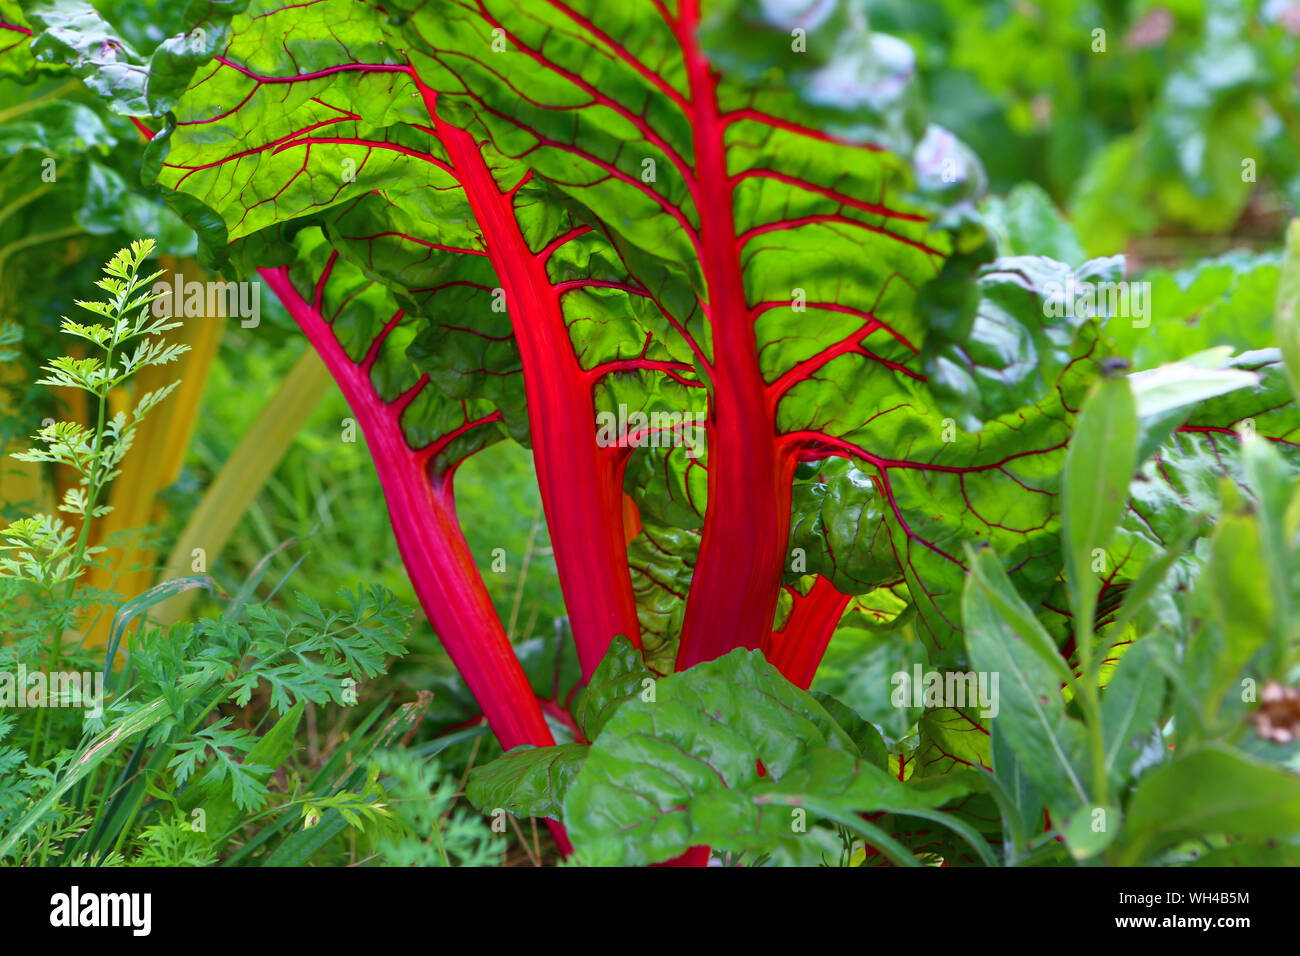 Ou Planter Une Rhubarbe rhubarbe stock photos & rhubarbe stock images - alamy